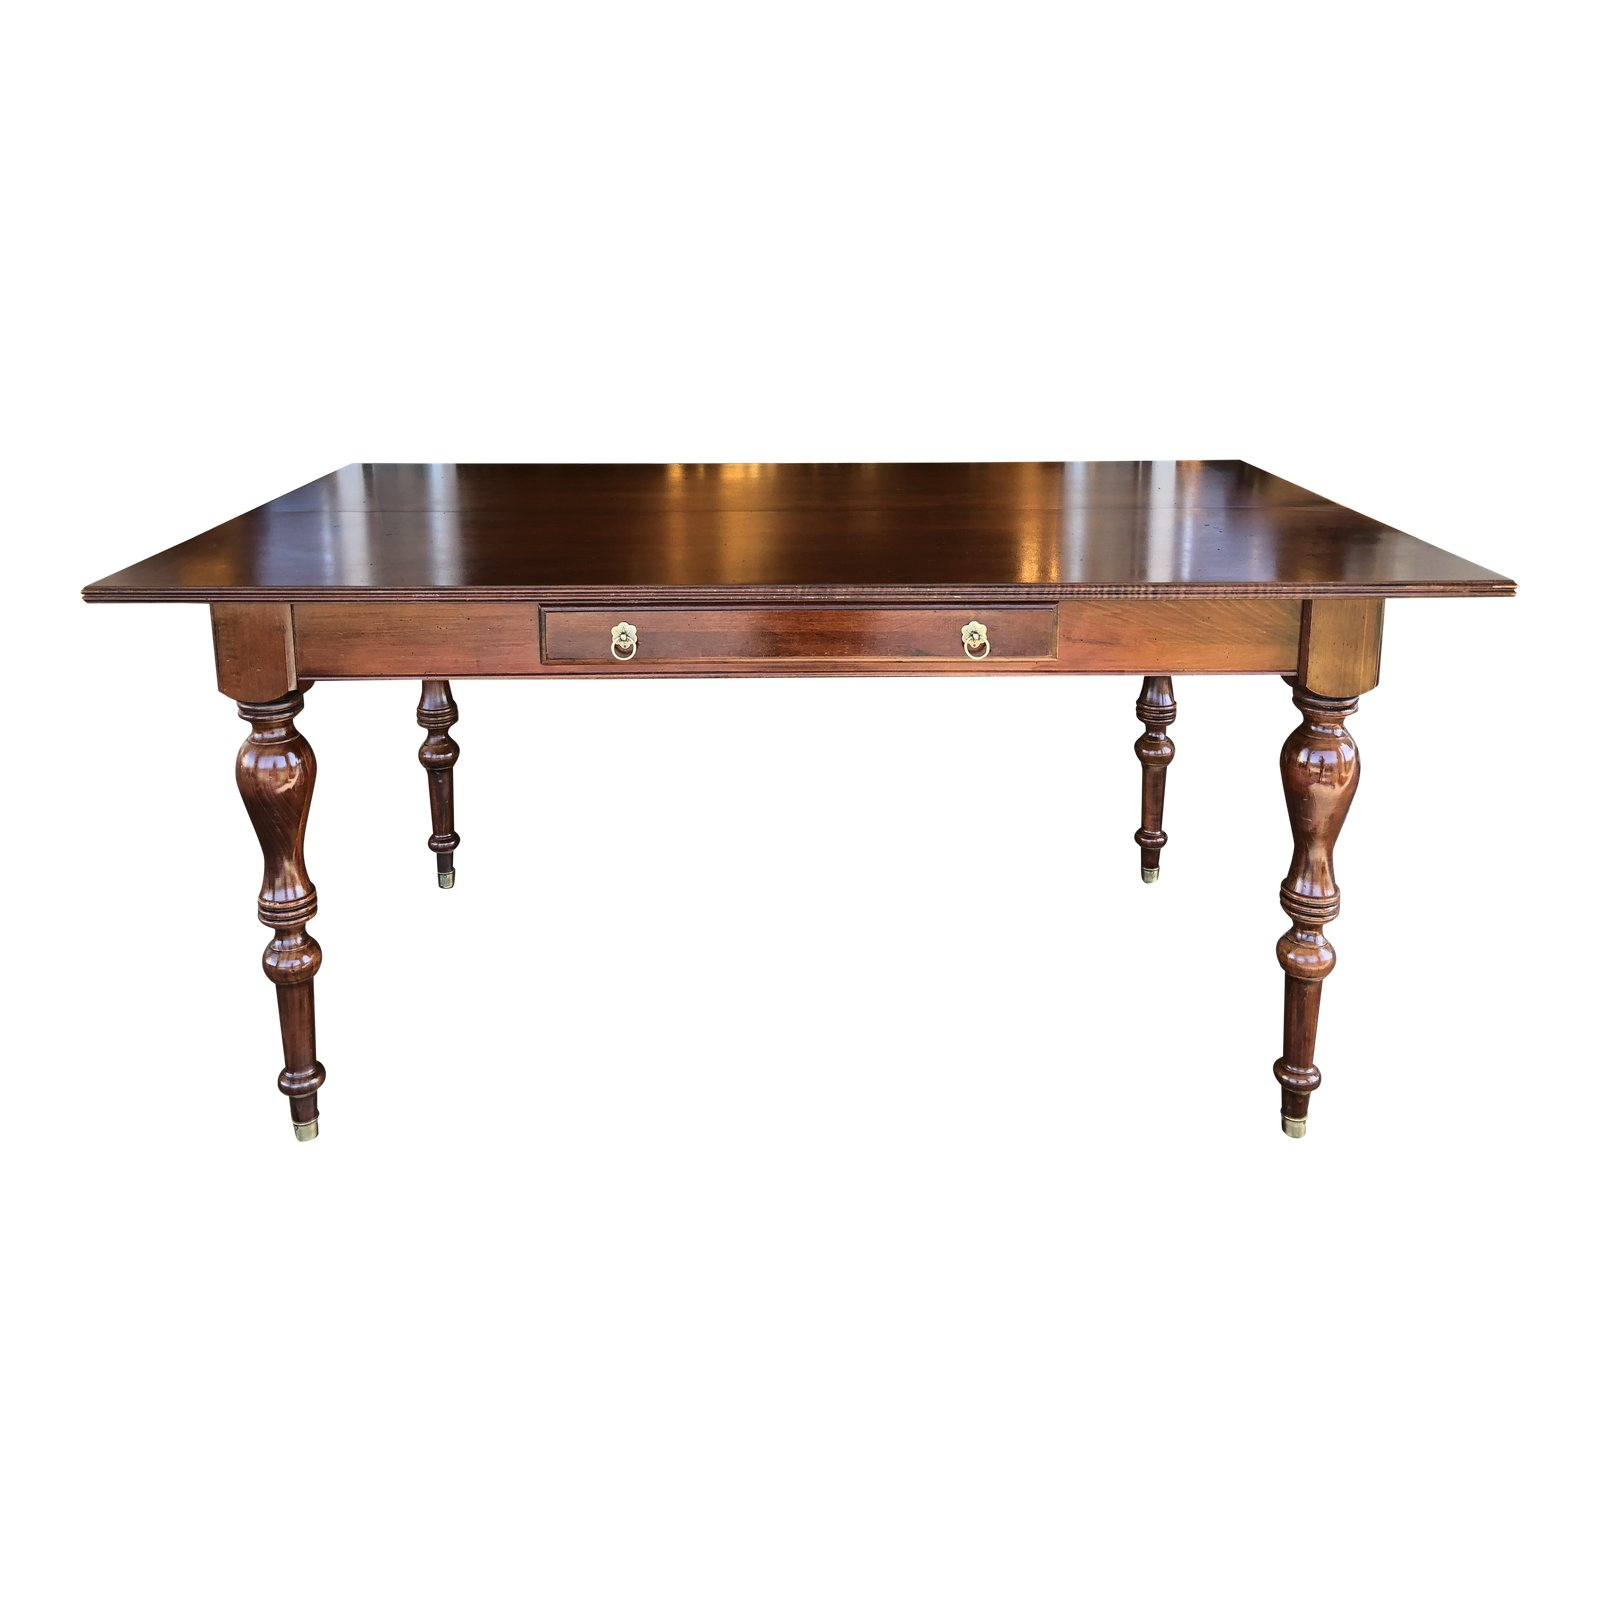 British Clics Convertible Console Dining Table By Ethan Allen